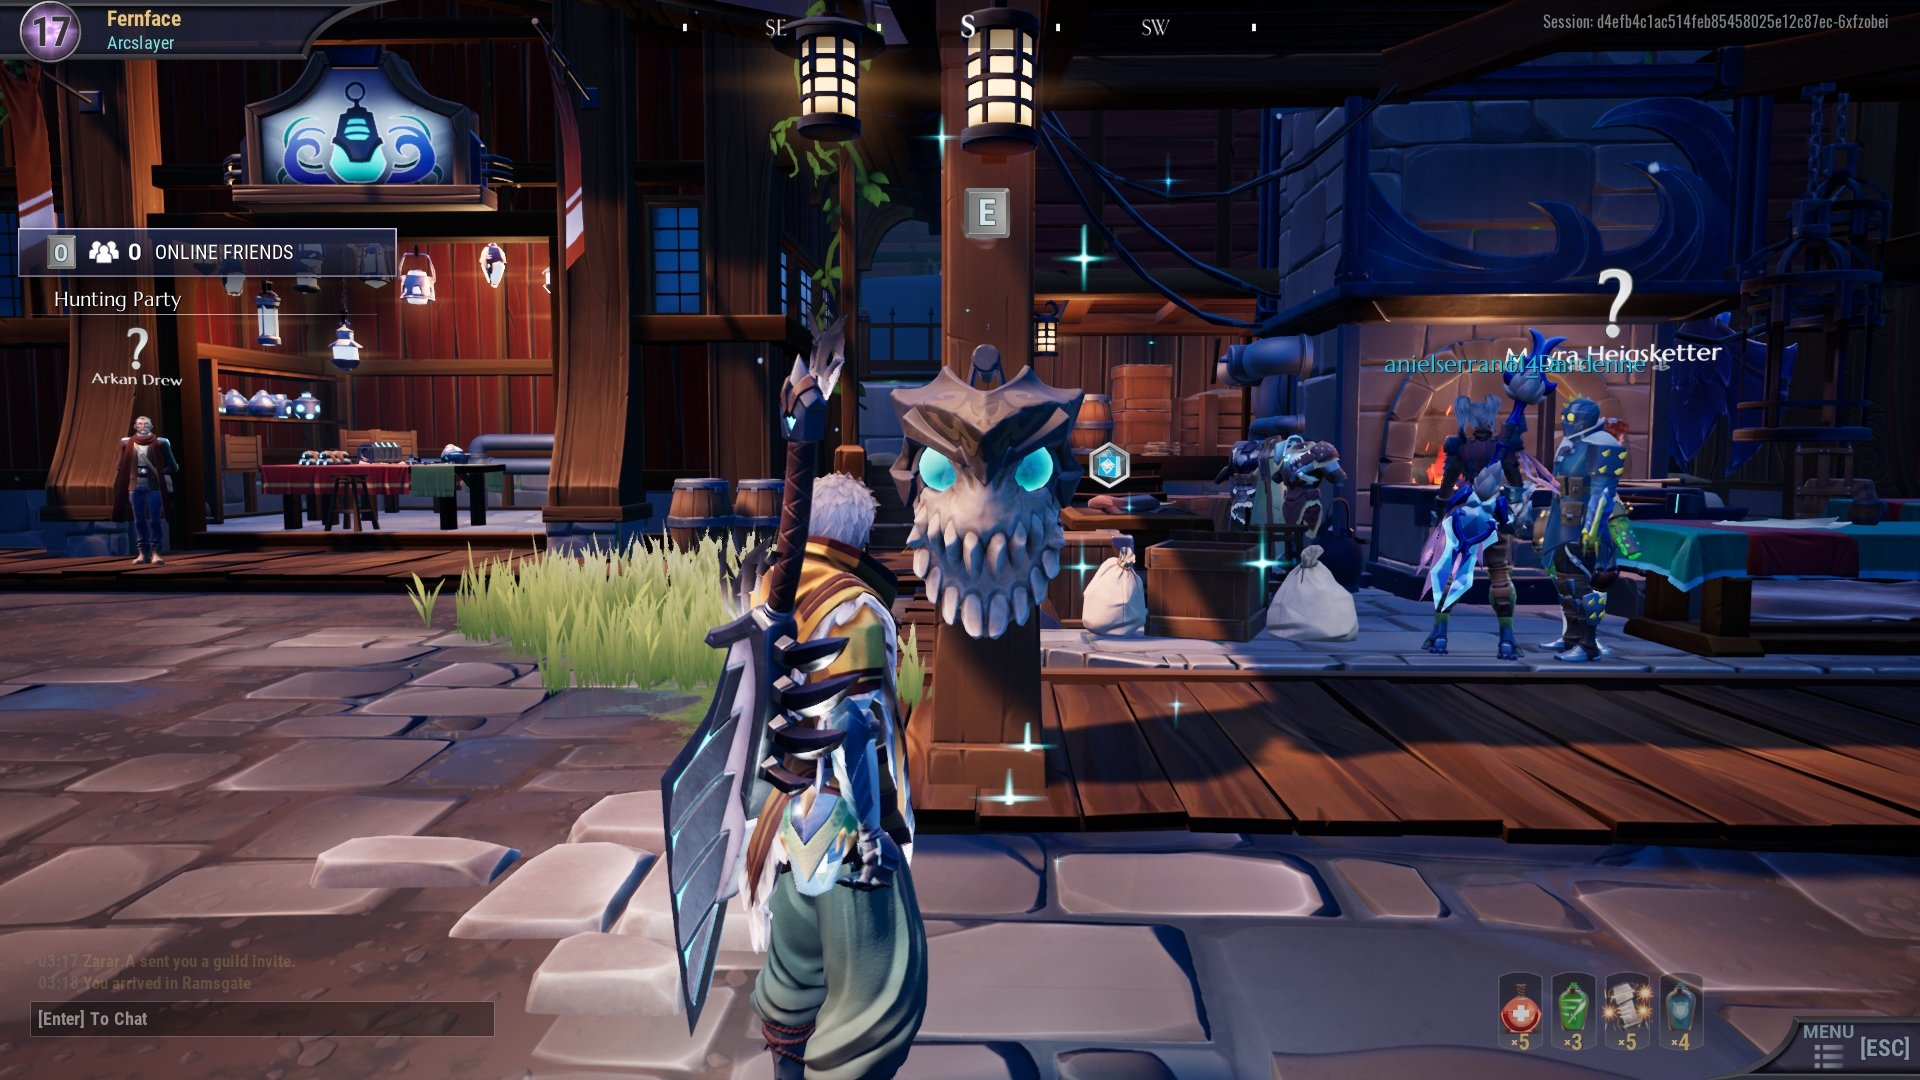 Dread Skull 5 - All daily dread skull locations in Dauntless